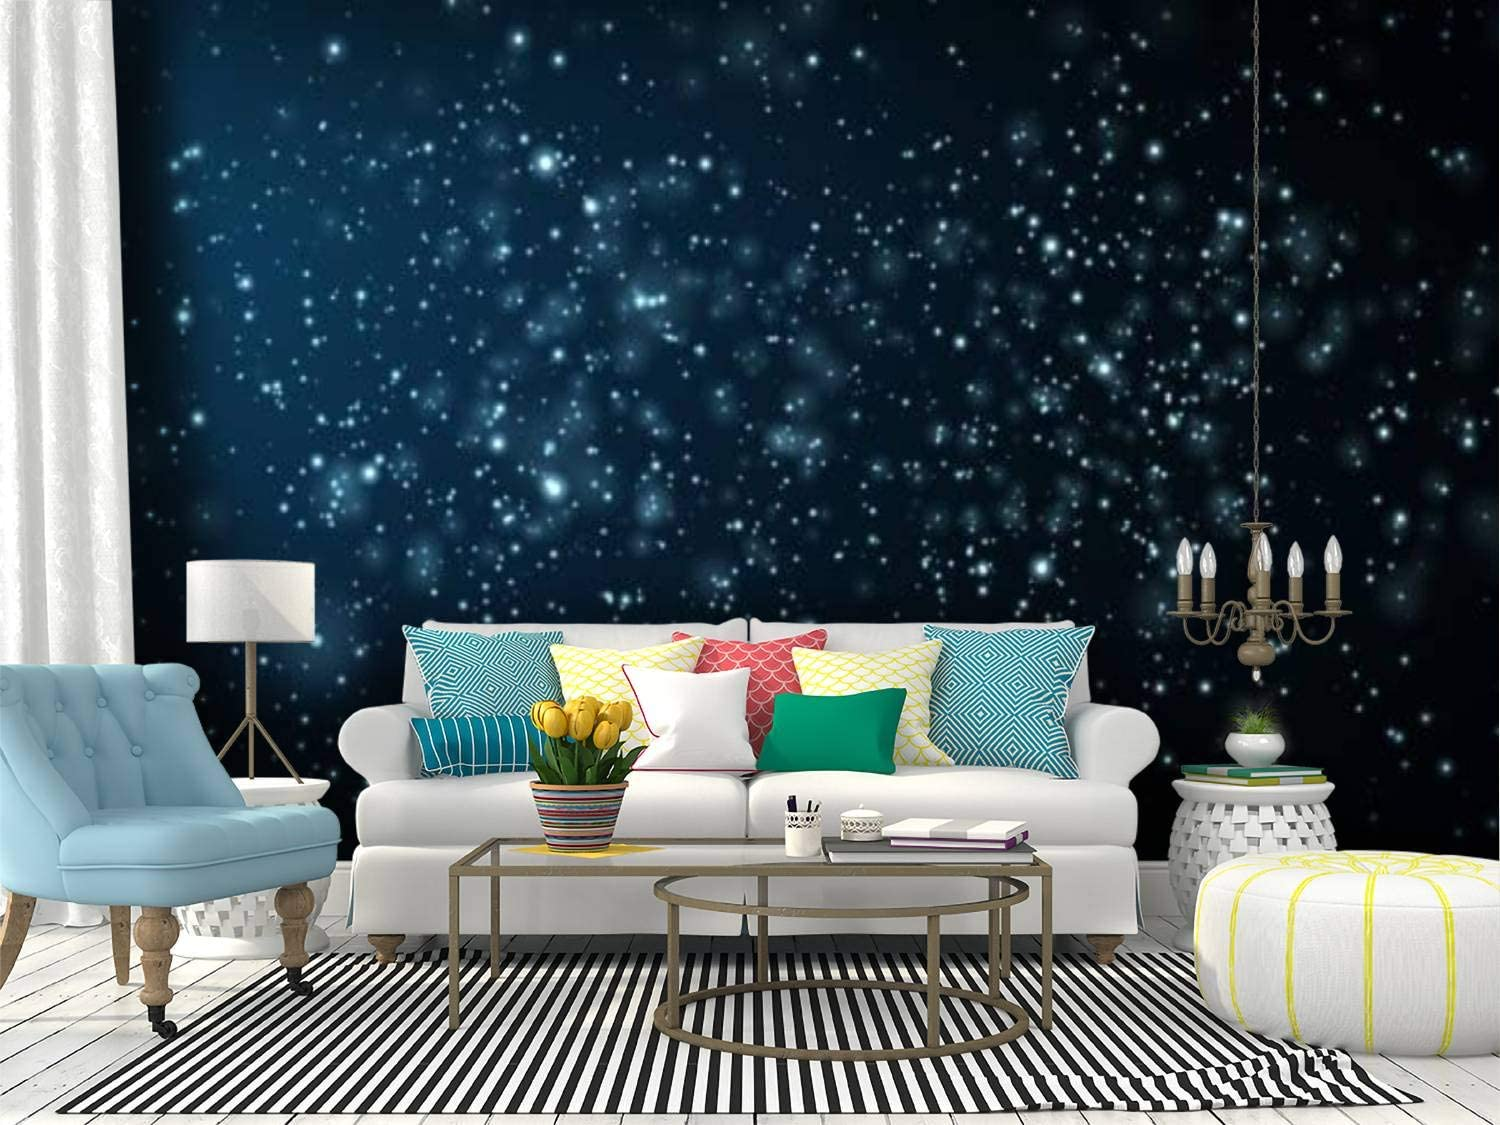 RECETHROWS Wall Mural Particles Background Depth a of Field Peel Max 74% OFF Fashionable